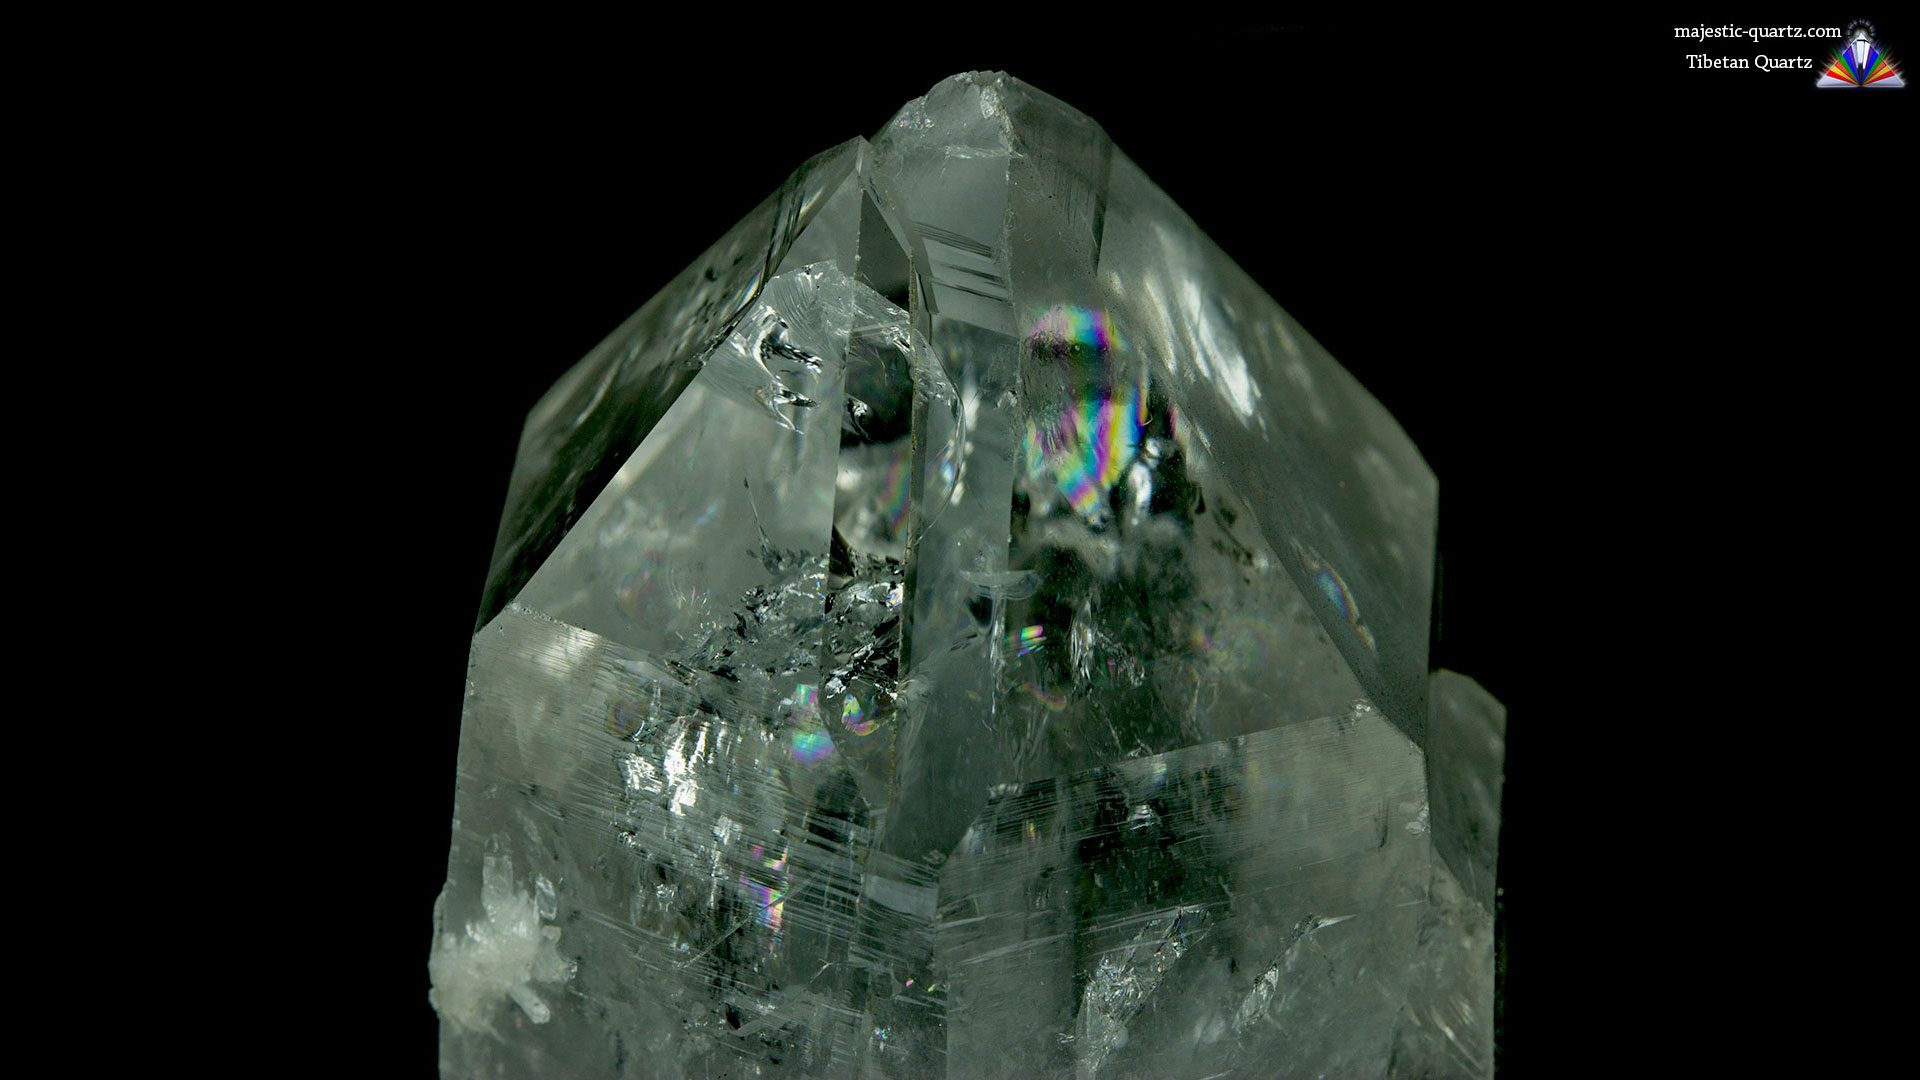 Tibetan Quartz Properties and Meaning - Photograph by Anthony Bradford